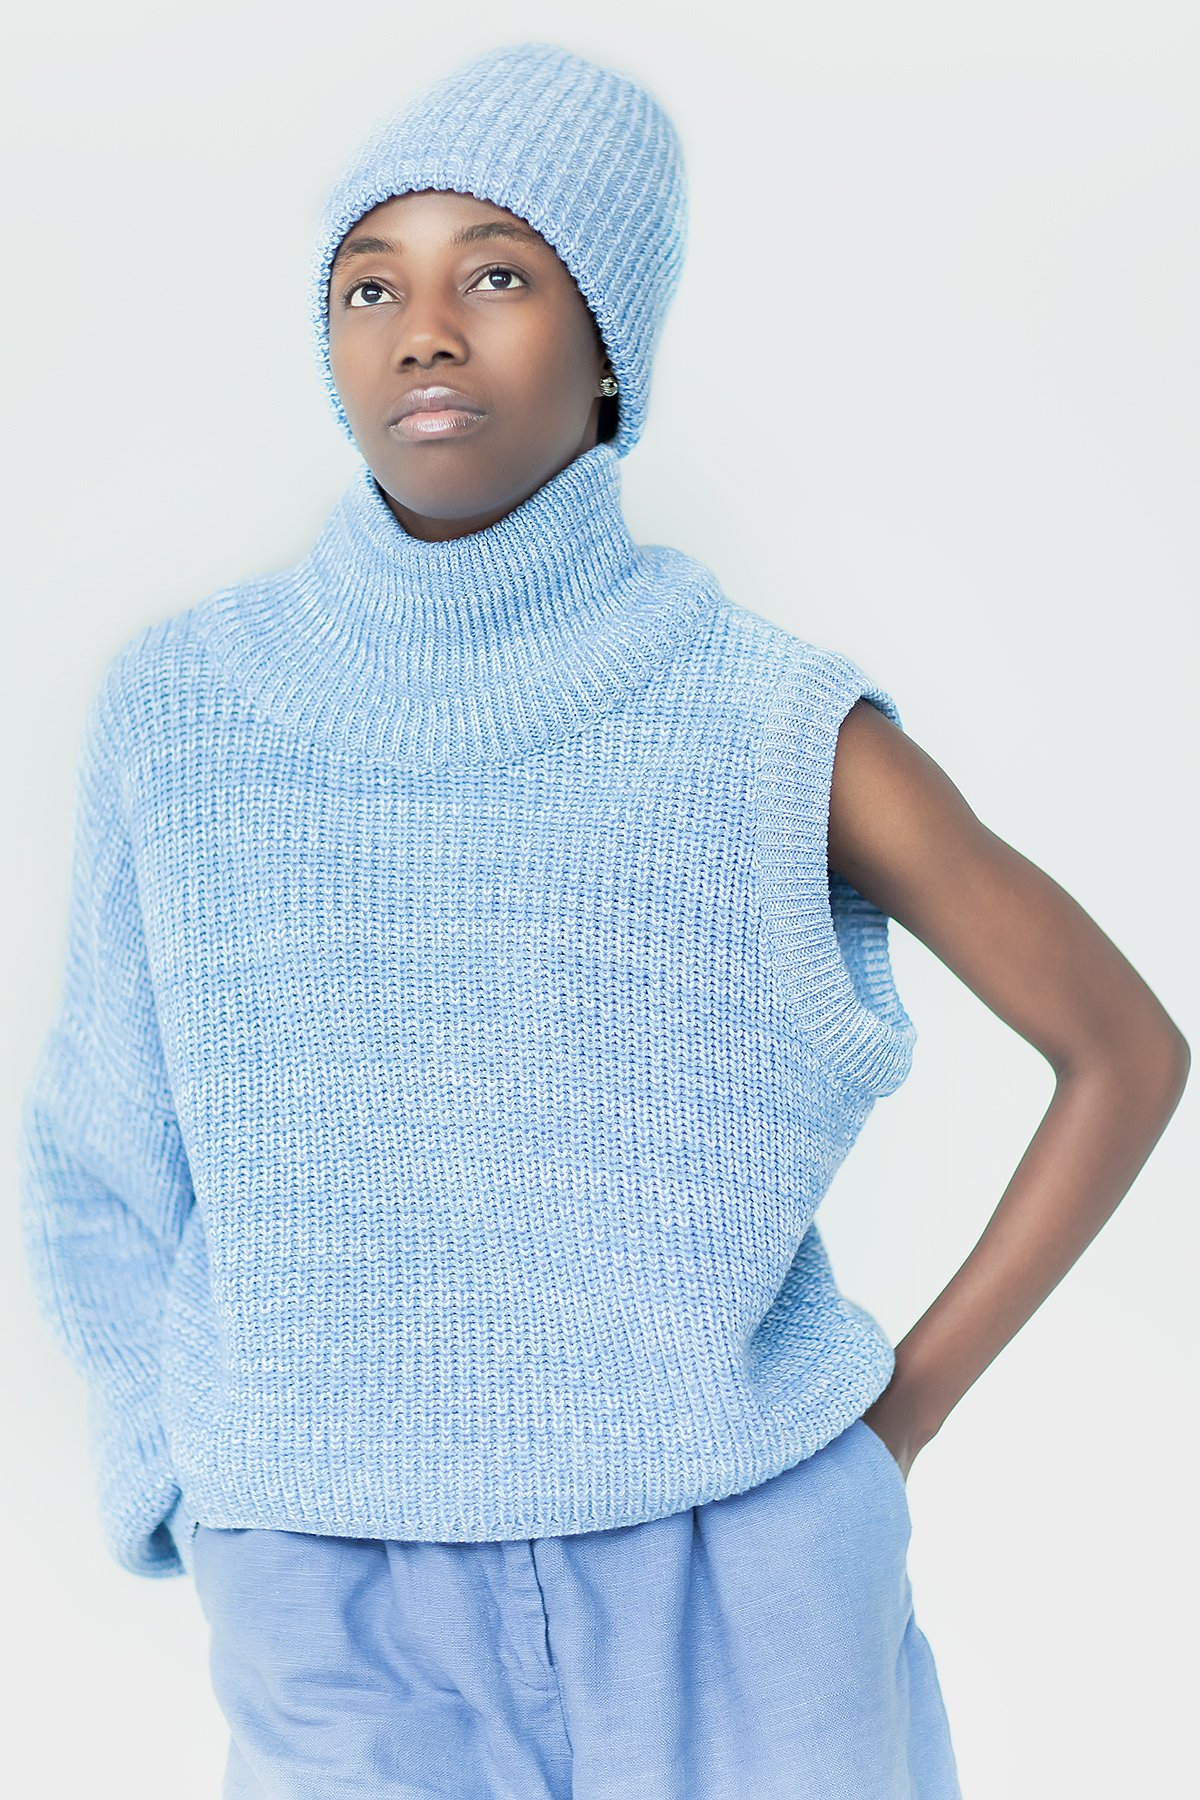 One shoulder sweater One sleeve knit sweater One sleeve knit pullover Light blue sweater Light blue top Blue turtleneck pullover